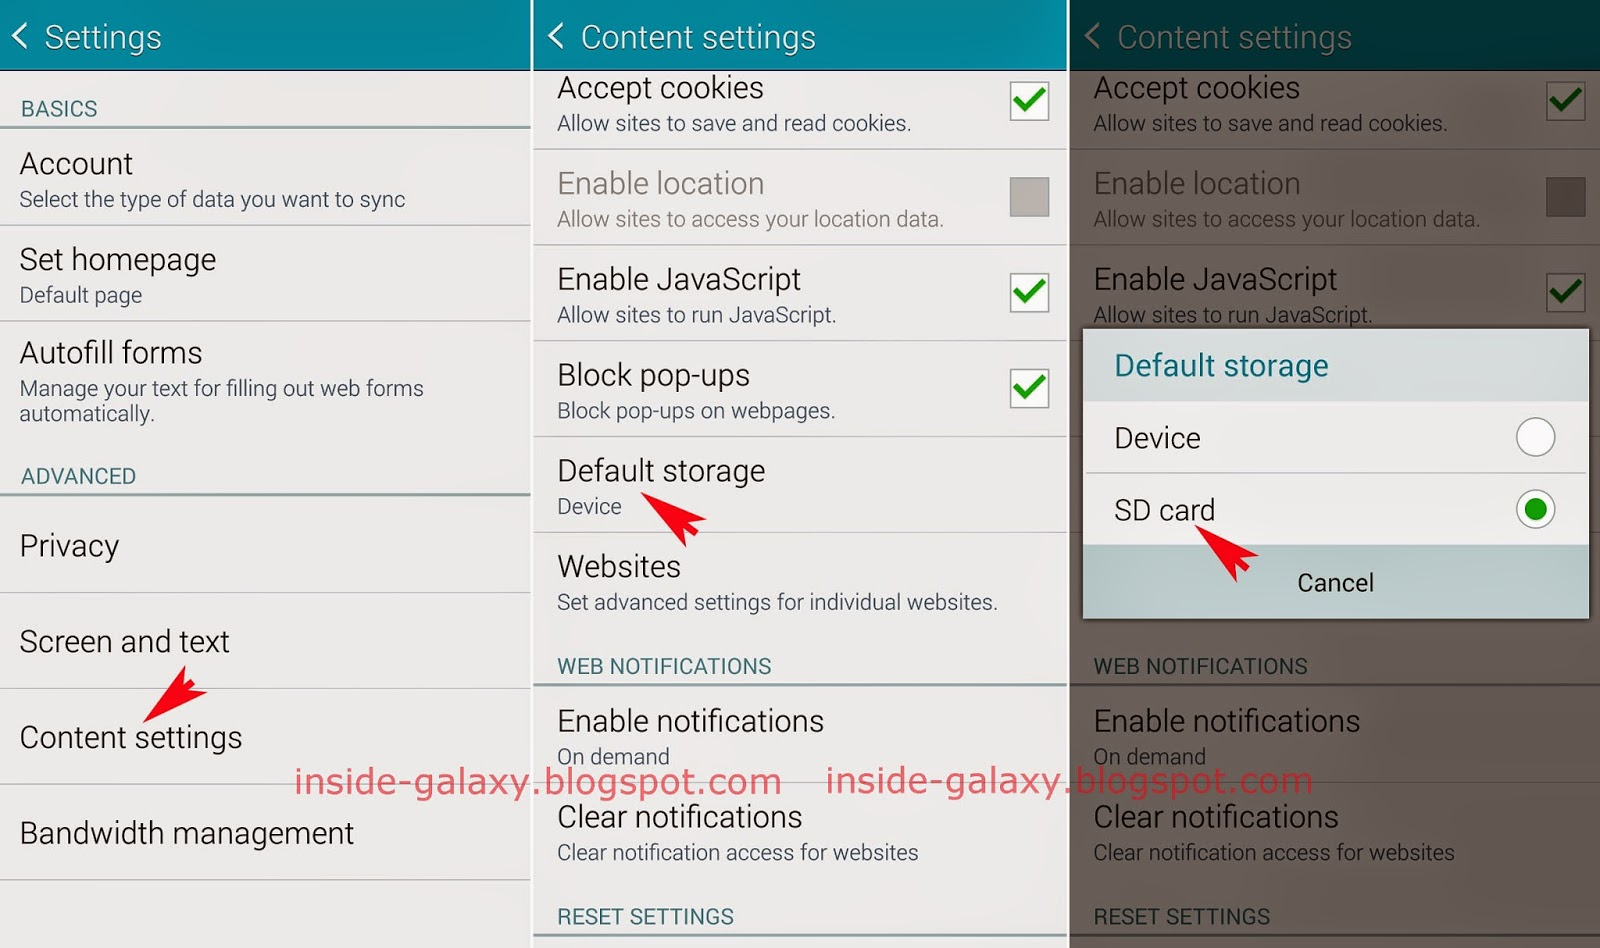 Inside Galaxy Samsung Galaxy S5 How To Set Sd Card As The Default Storage In Internet App In Android 4 4 2 Kitkat